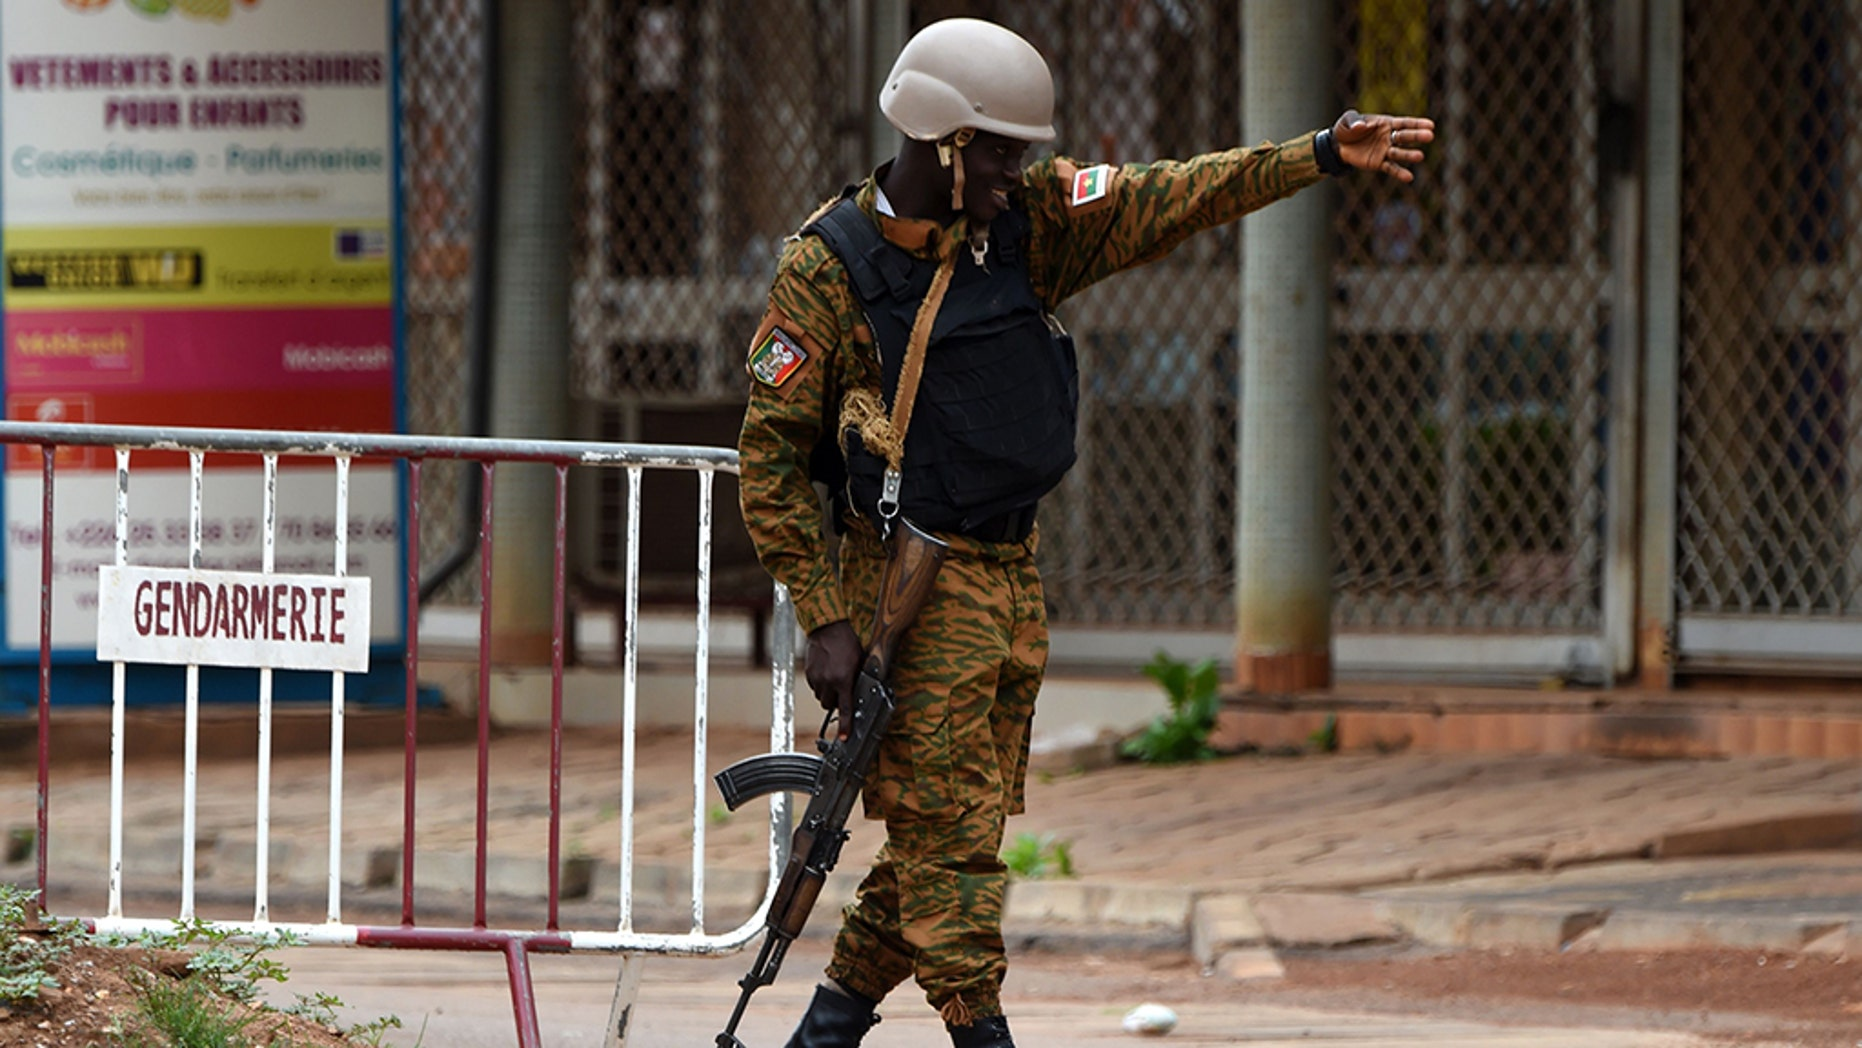 A security official gestures as he stands at a barrier close to the site of a terrorist attack in Ouagadougou on August 15, 2017. (KAMBOU/AFP/Getty Images)